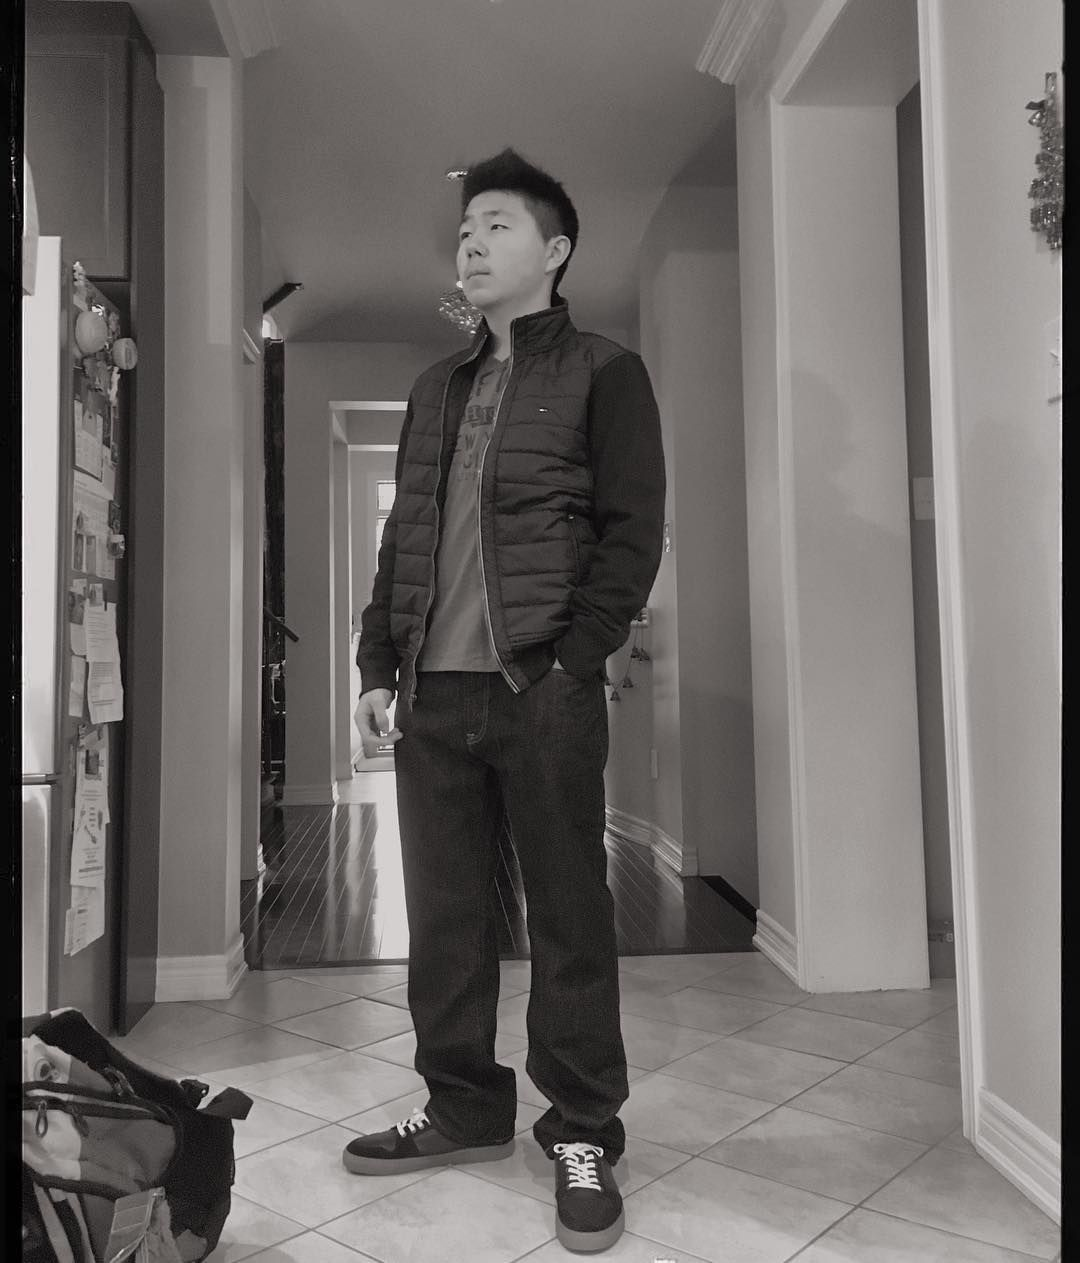 My brother looking so cool in his new outfits